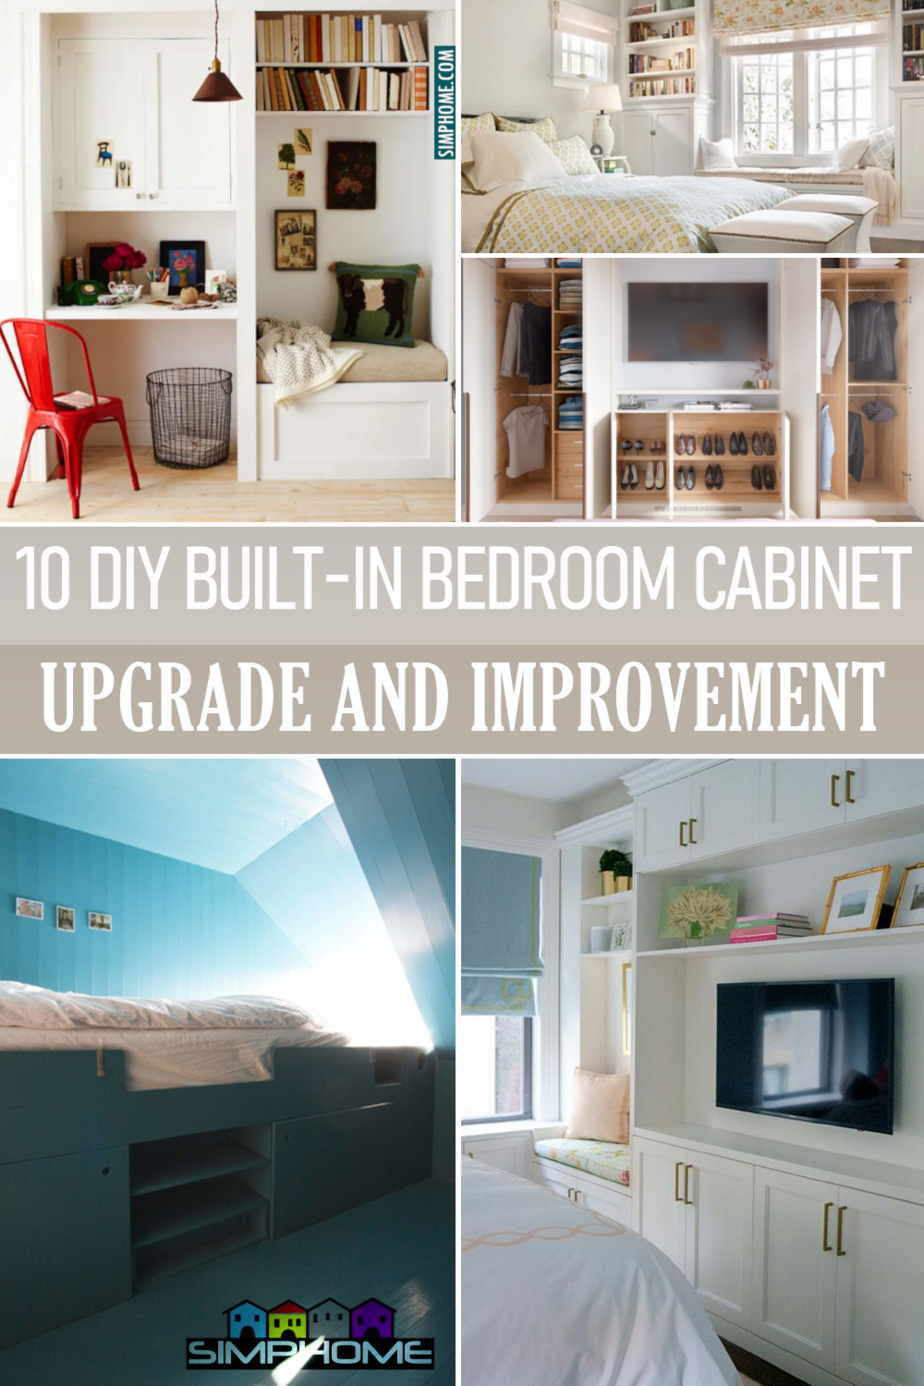 10 Built In Bedroom Cabinets Ideas via Simphome.comFeatured